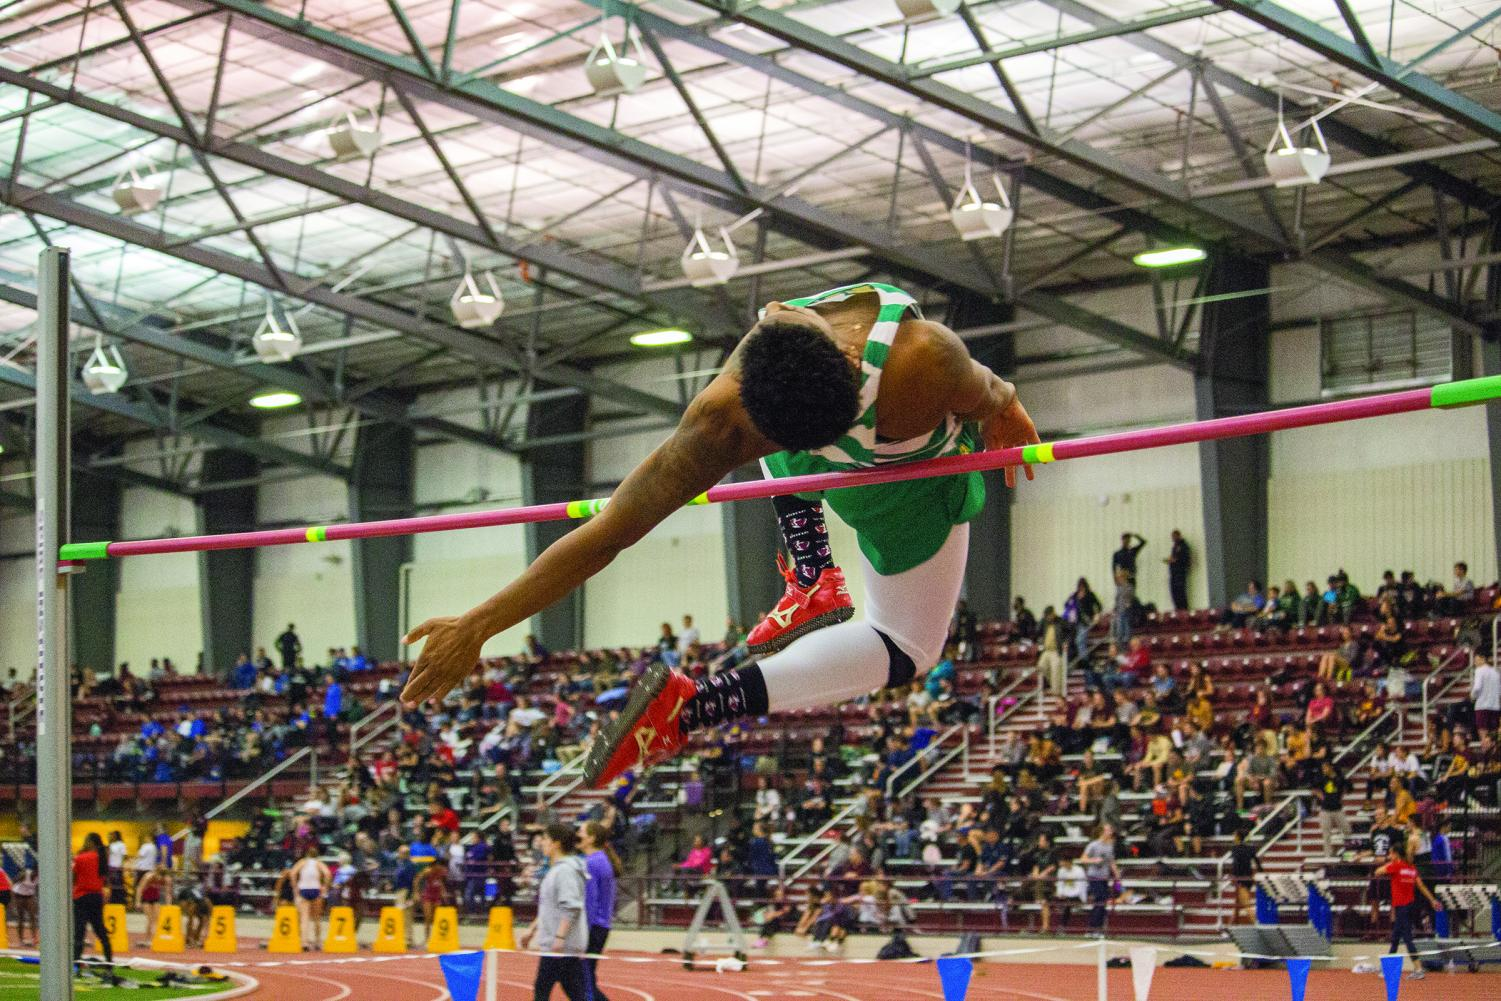 Senior Michael Morris competes in the high jump at the 2018 SPIRE Midwest Open. Morris competed in the event last month in Youngstown placing seventh and was only .9 meters shy of qualifying for the NAIA national Championship.